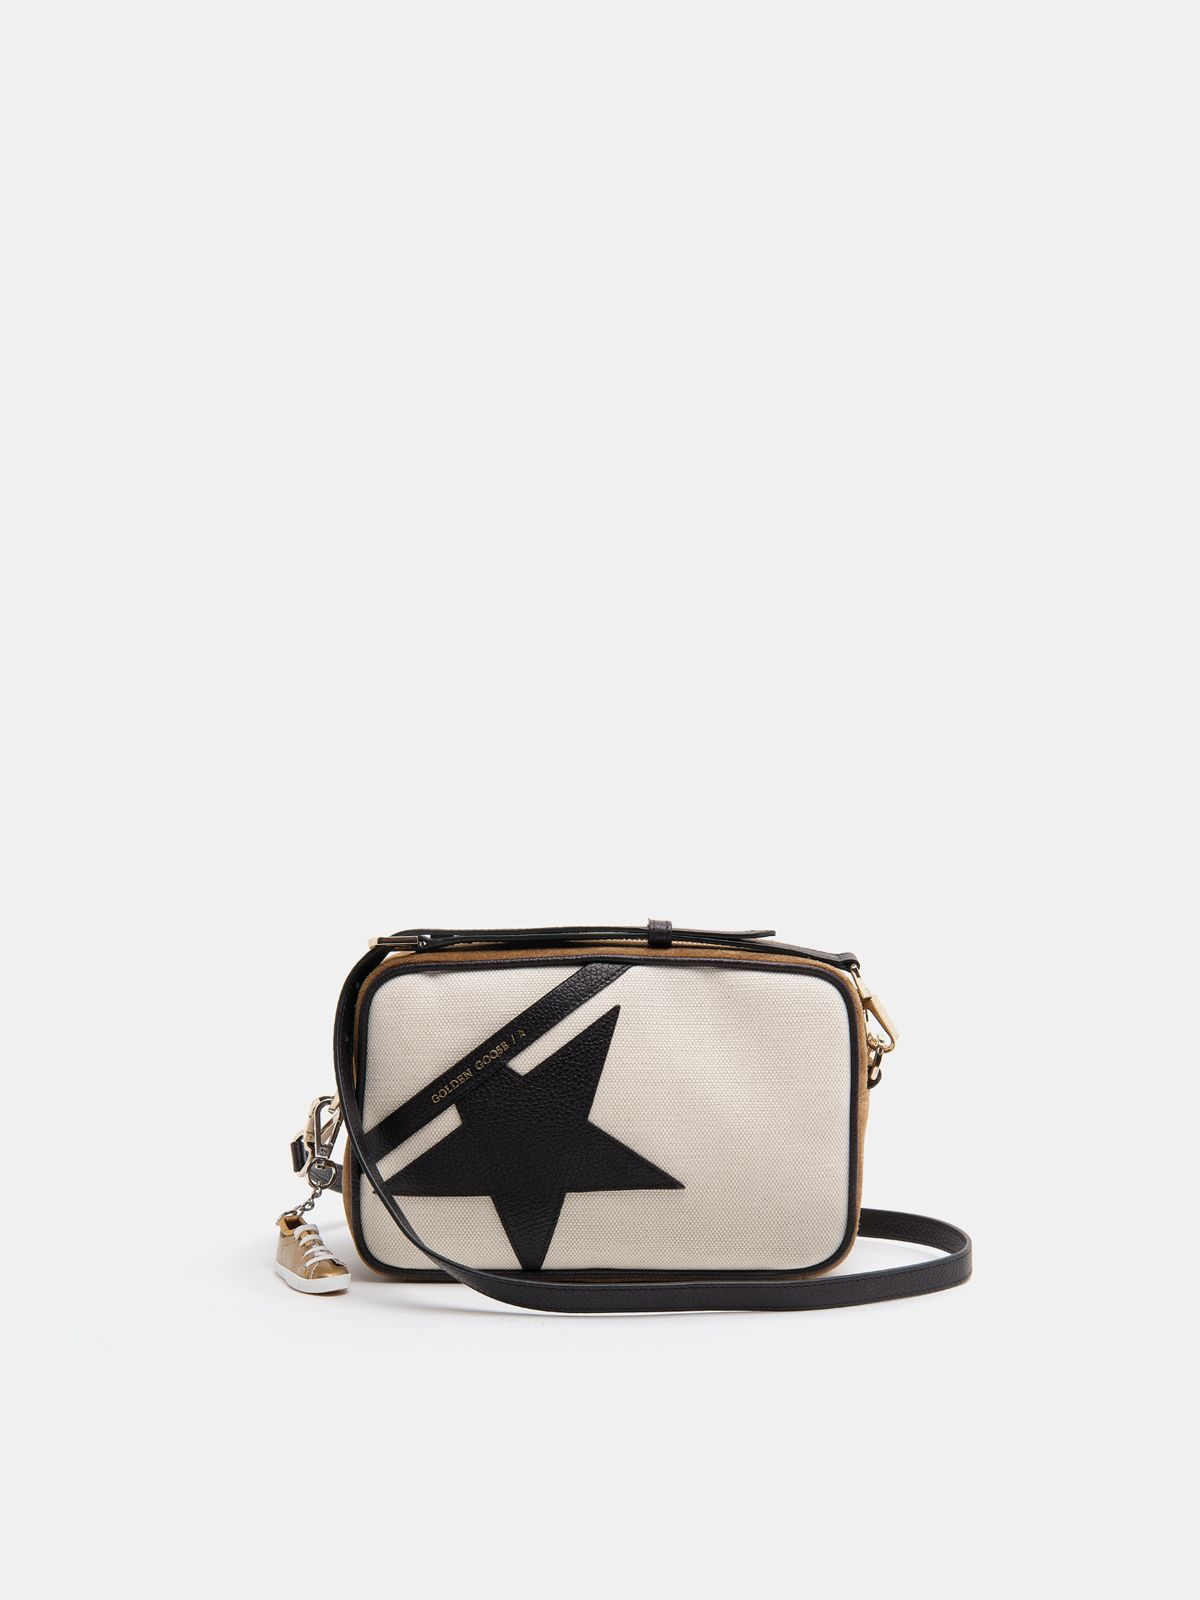 Golden Goose - Star Bag made of canvas and brown suede leather with black star in